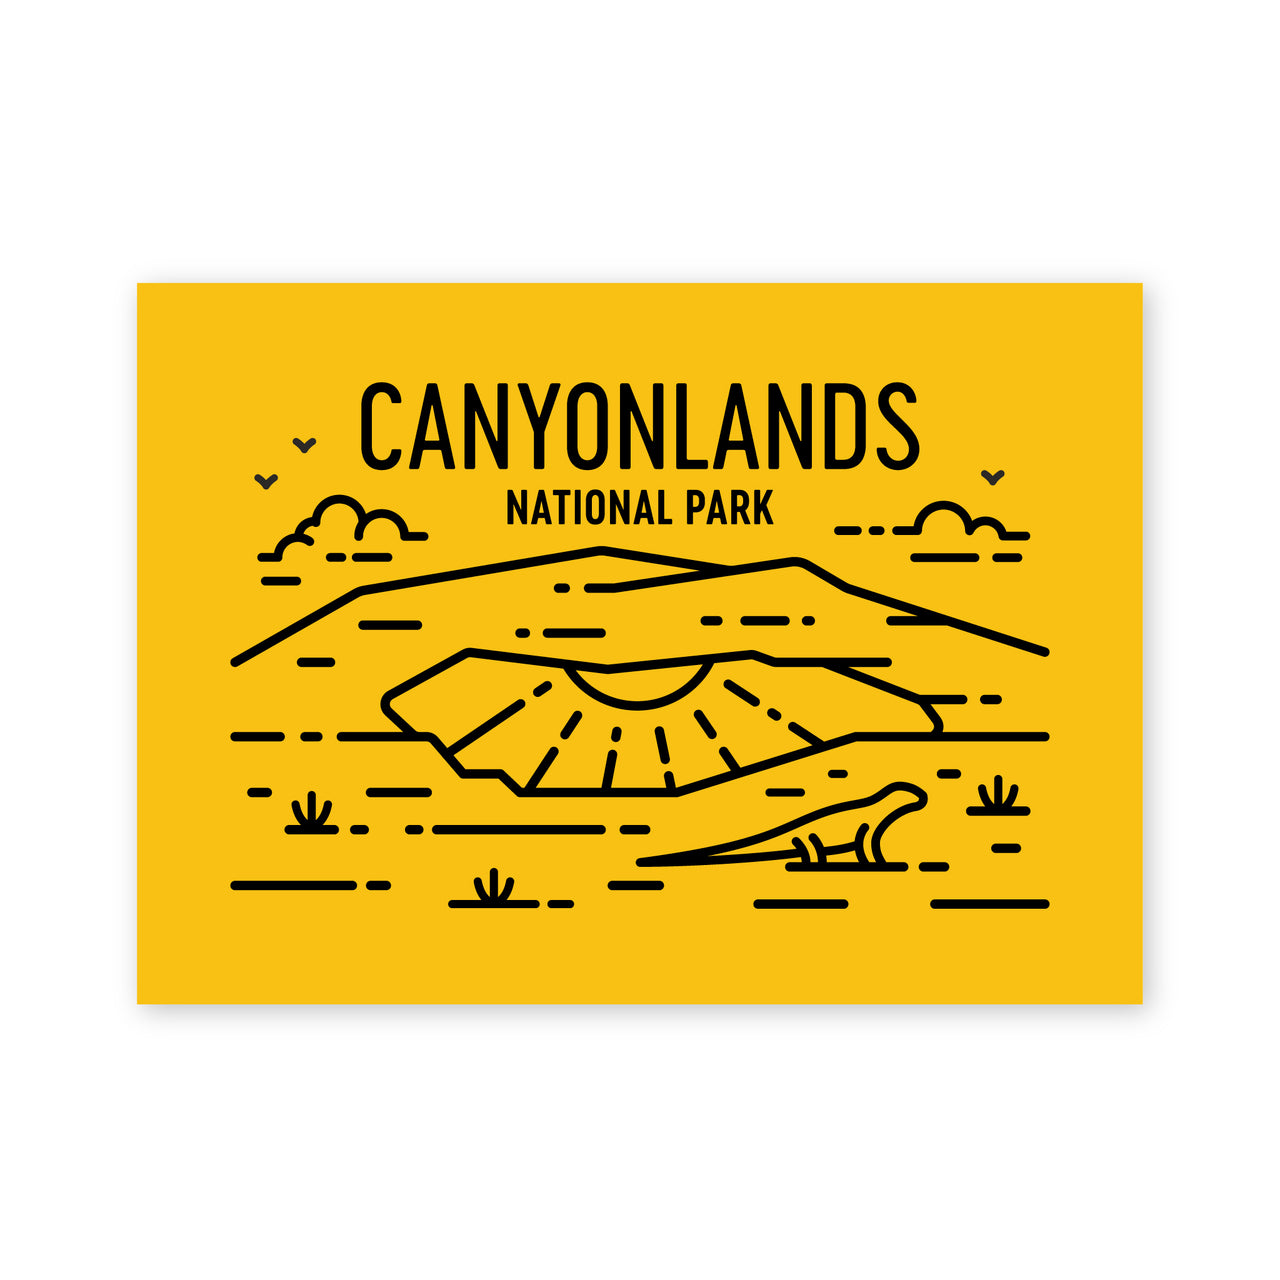 Canyonlands National Park Postcard